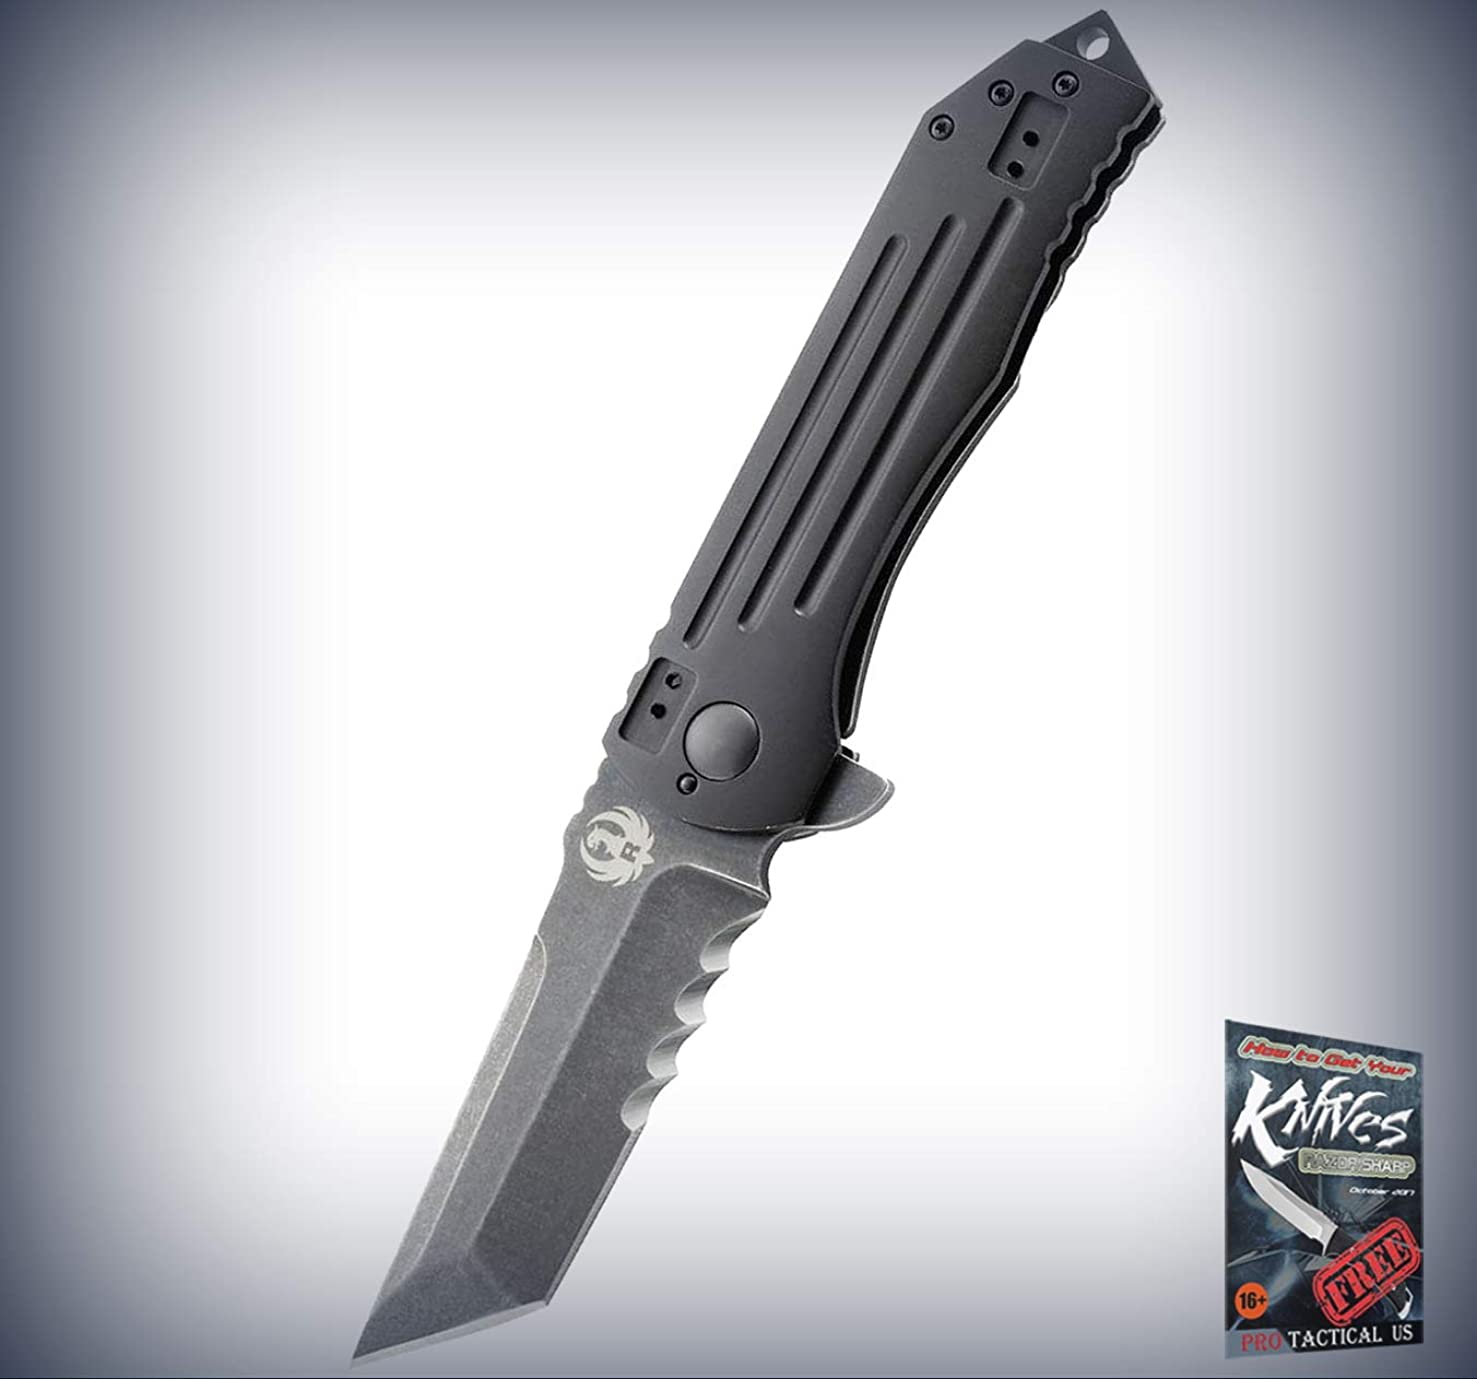 New Ruger 2-Stage Framelock Veff BLK Stonewash Folding Tanto Blade Pro Tactical Elite Knife K for Home Camping Hunting Rescue + free Ebook by ProTactical